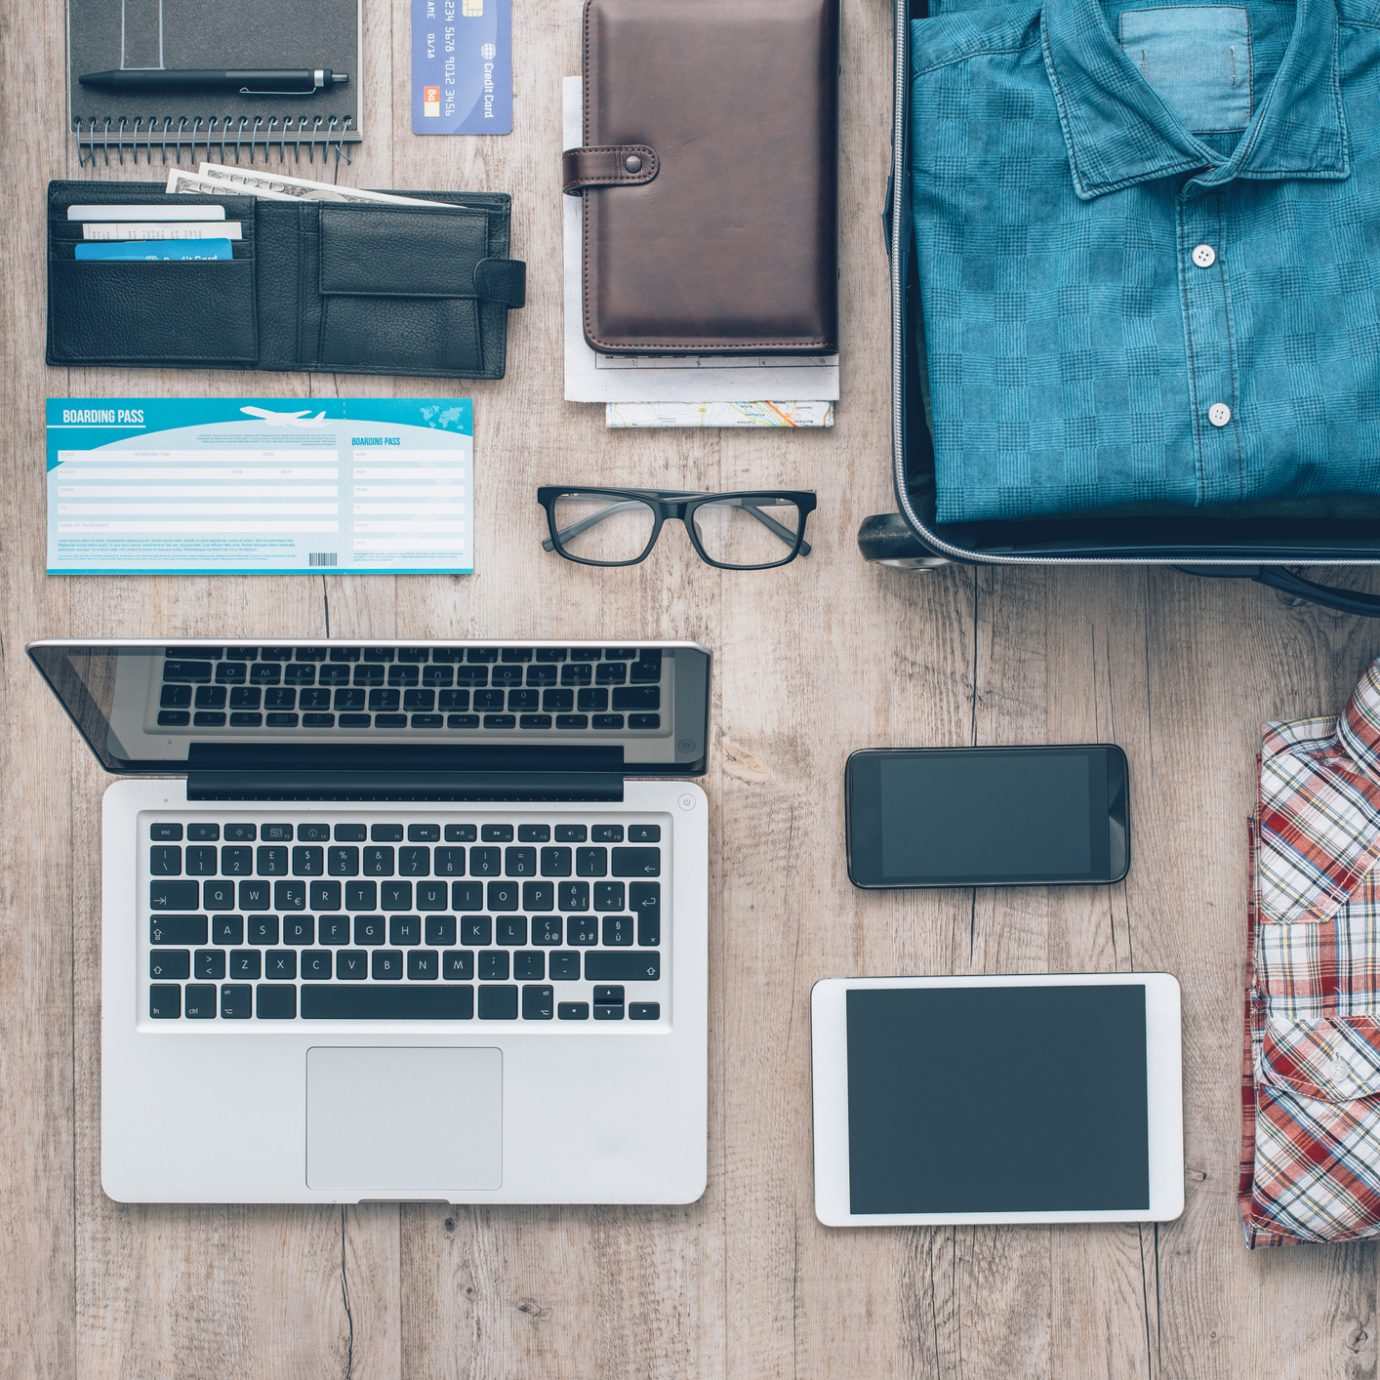 Travel equipment on a desktop: clothing, wallet, laptop, tablet, smartphone and personal accessories, travel and vacations concept